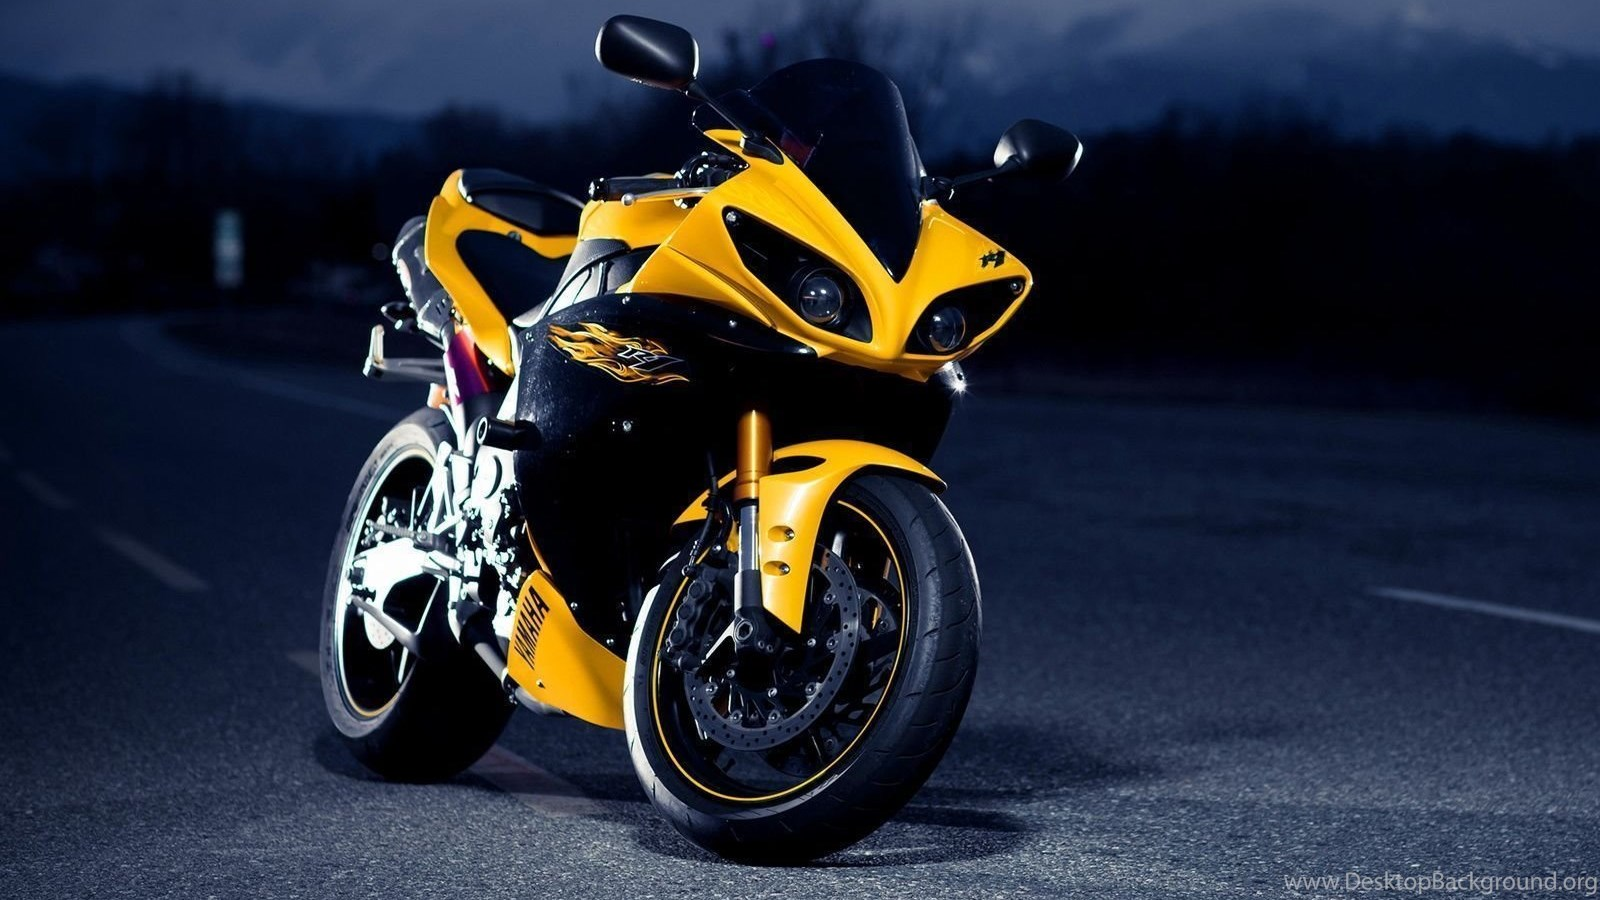 Download Yamaha R6 Wallpapers HD 2609 1920x1080 Px High